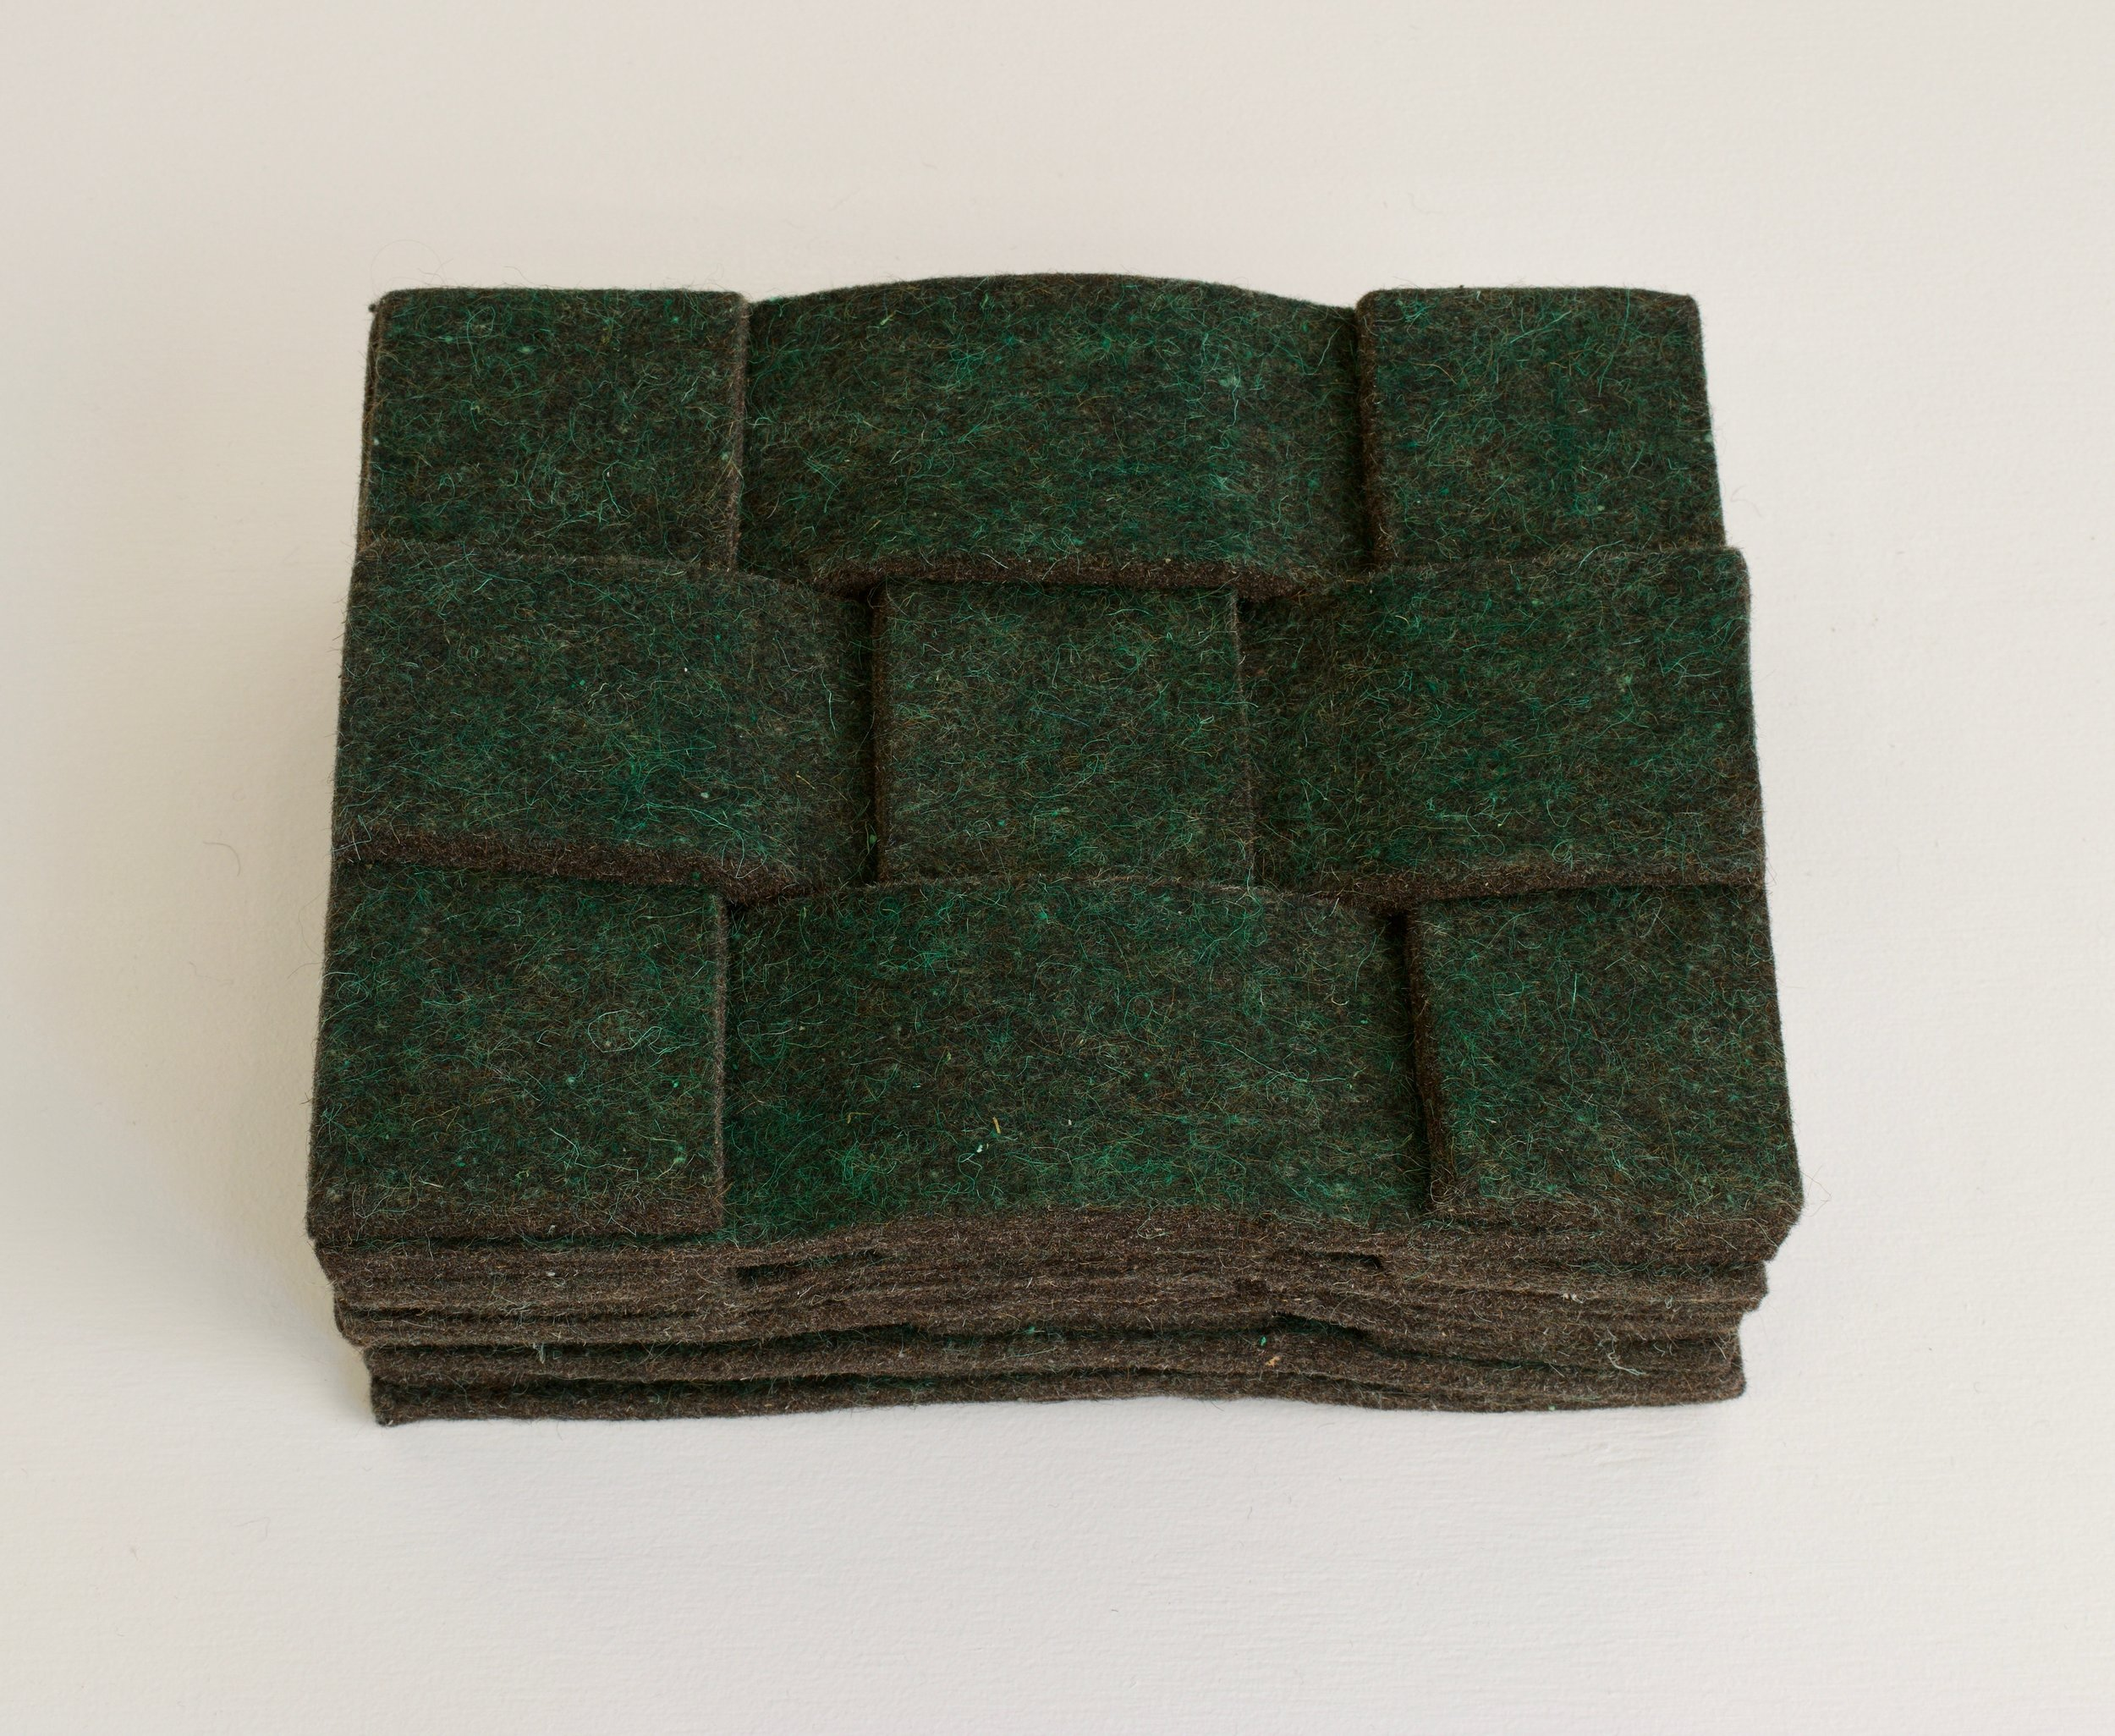 "Laura Kaufman, ""Divot"", 2015. Felt, wax, crayon, glue. 11x14.5x6 in."